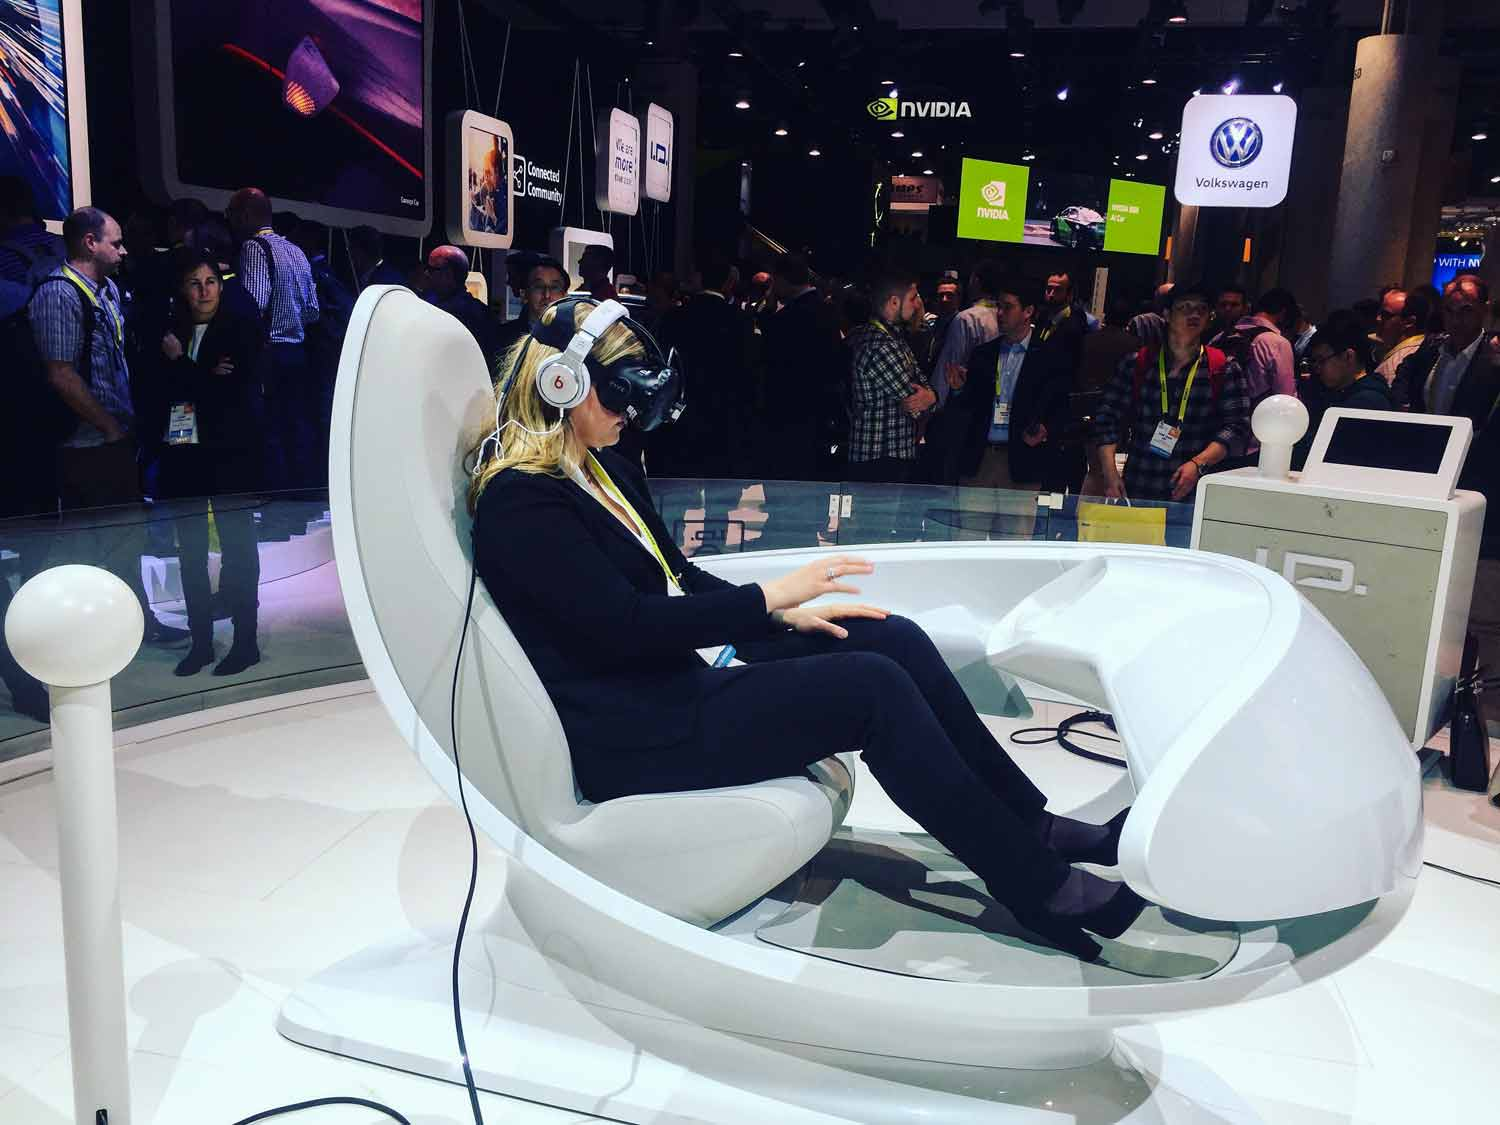 Paige Kassalen in a simulator at a tech trade show with goggles and headphones on.